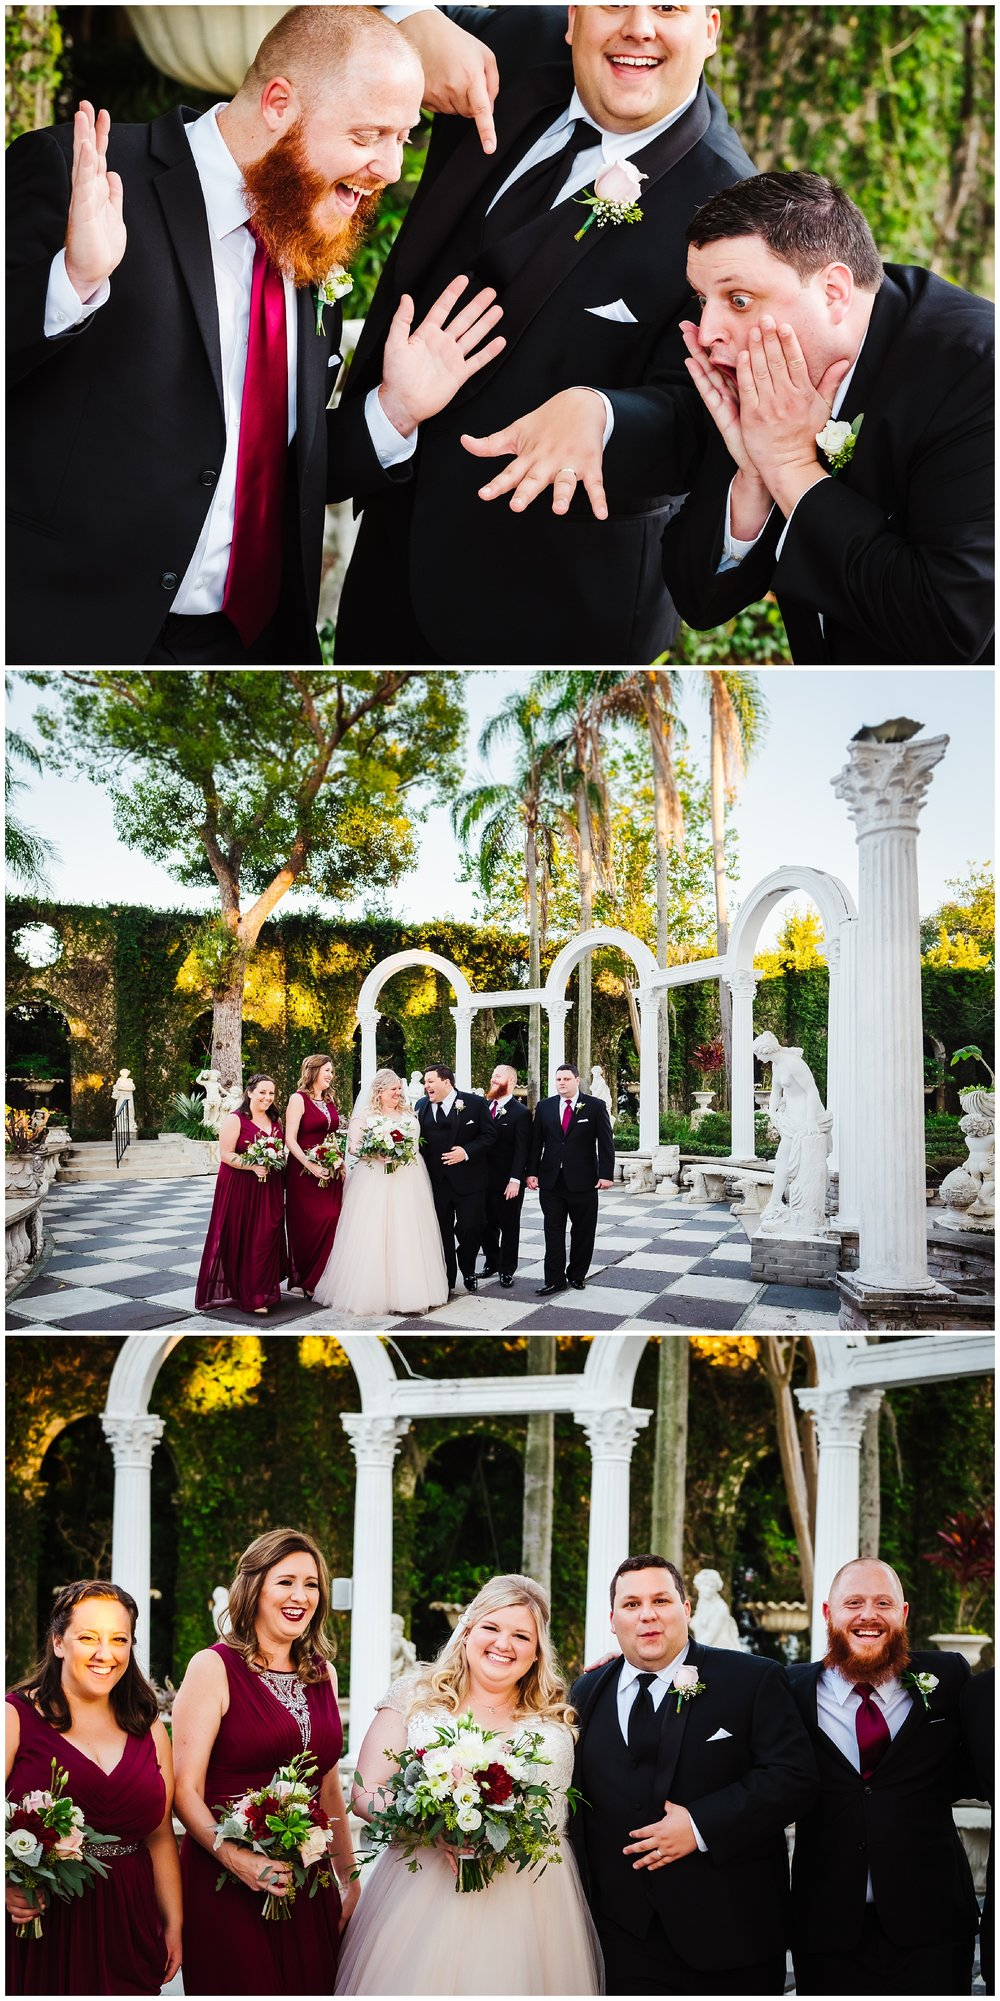 tampa-wedding-photographer-kapok-special-events-center-hayley-paige-gress-blush-gold-disney_0044.jpg